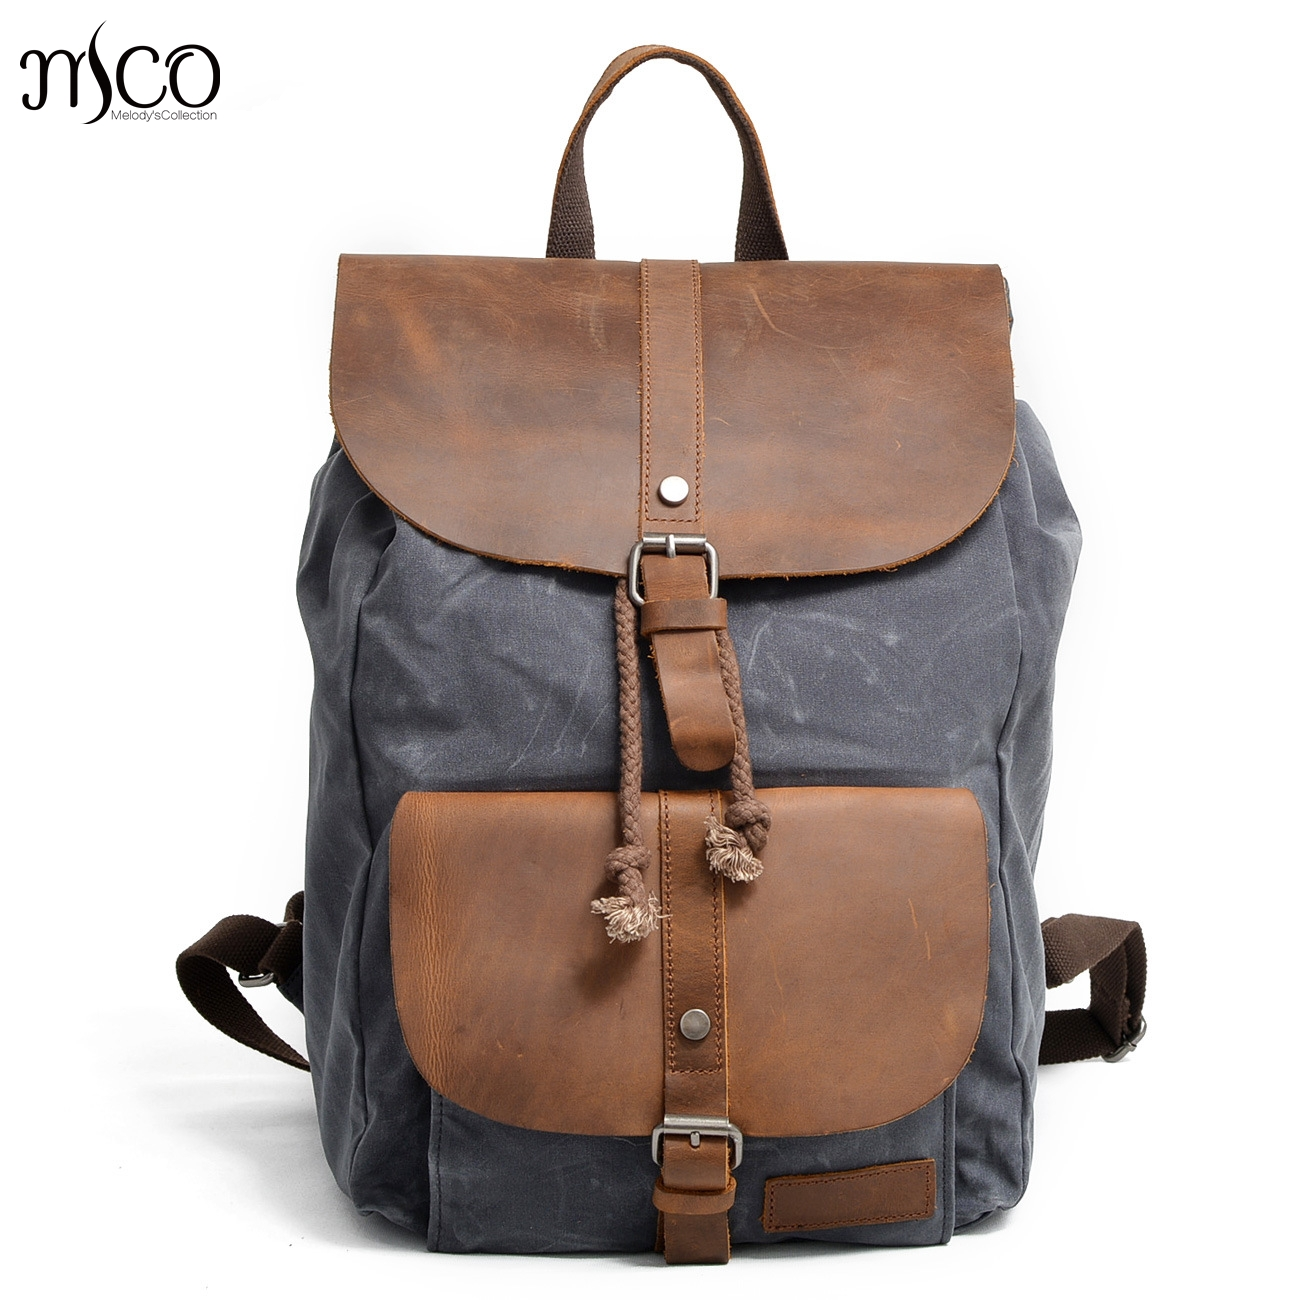 MCO 2018 Vintage Waxed Canvas Men Backpack Military Oiled Leather School  Backpacks Male Business Rucksack Waterproof Travel Bag 796f237eb8